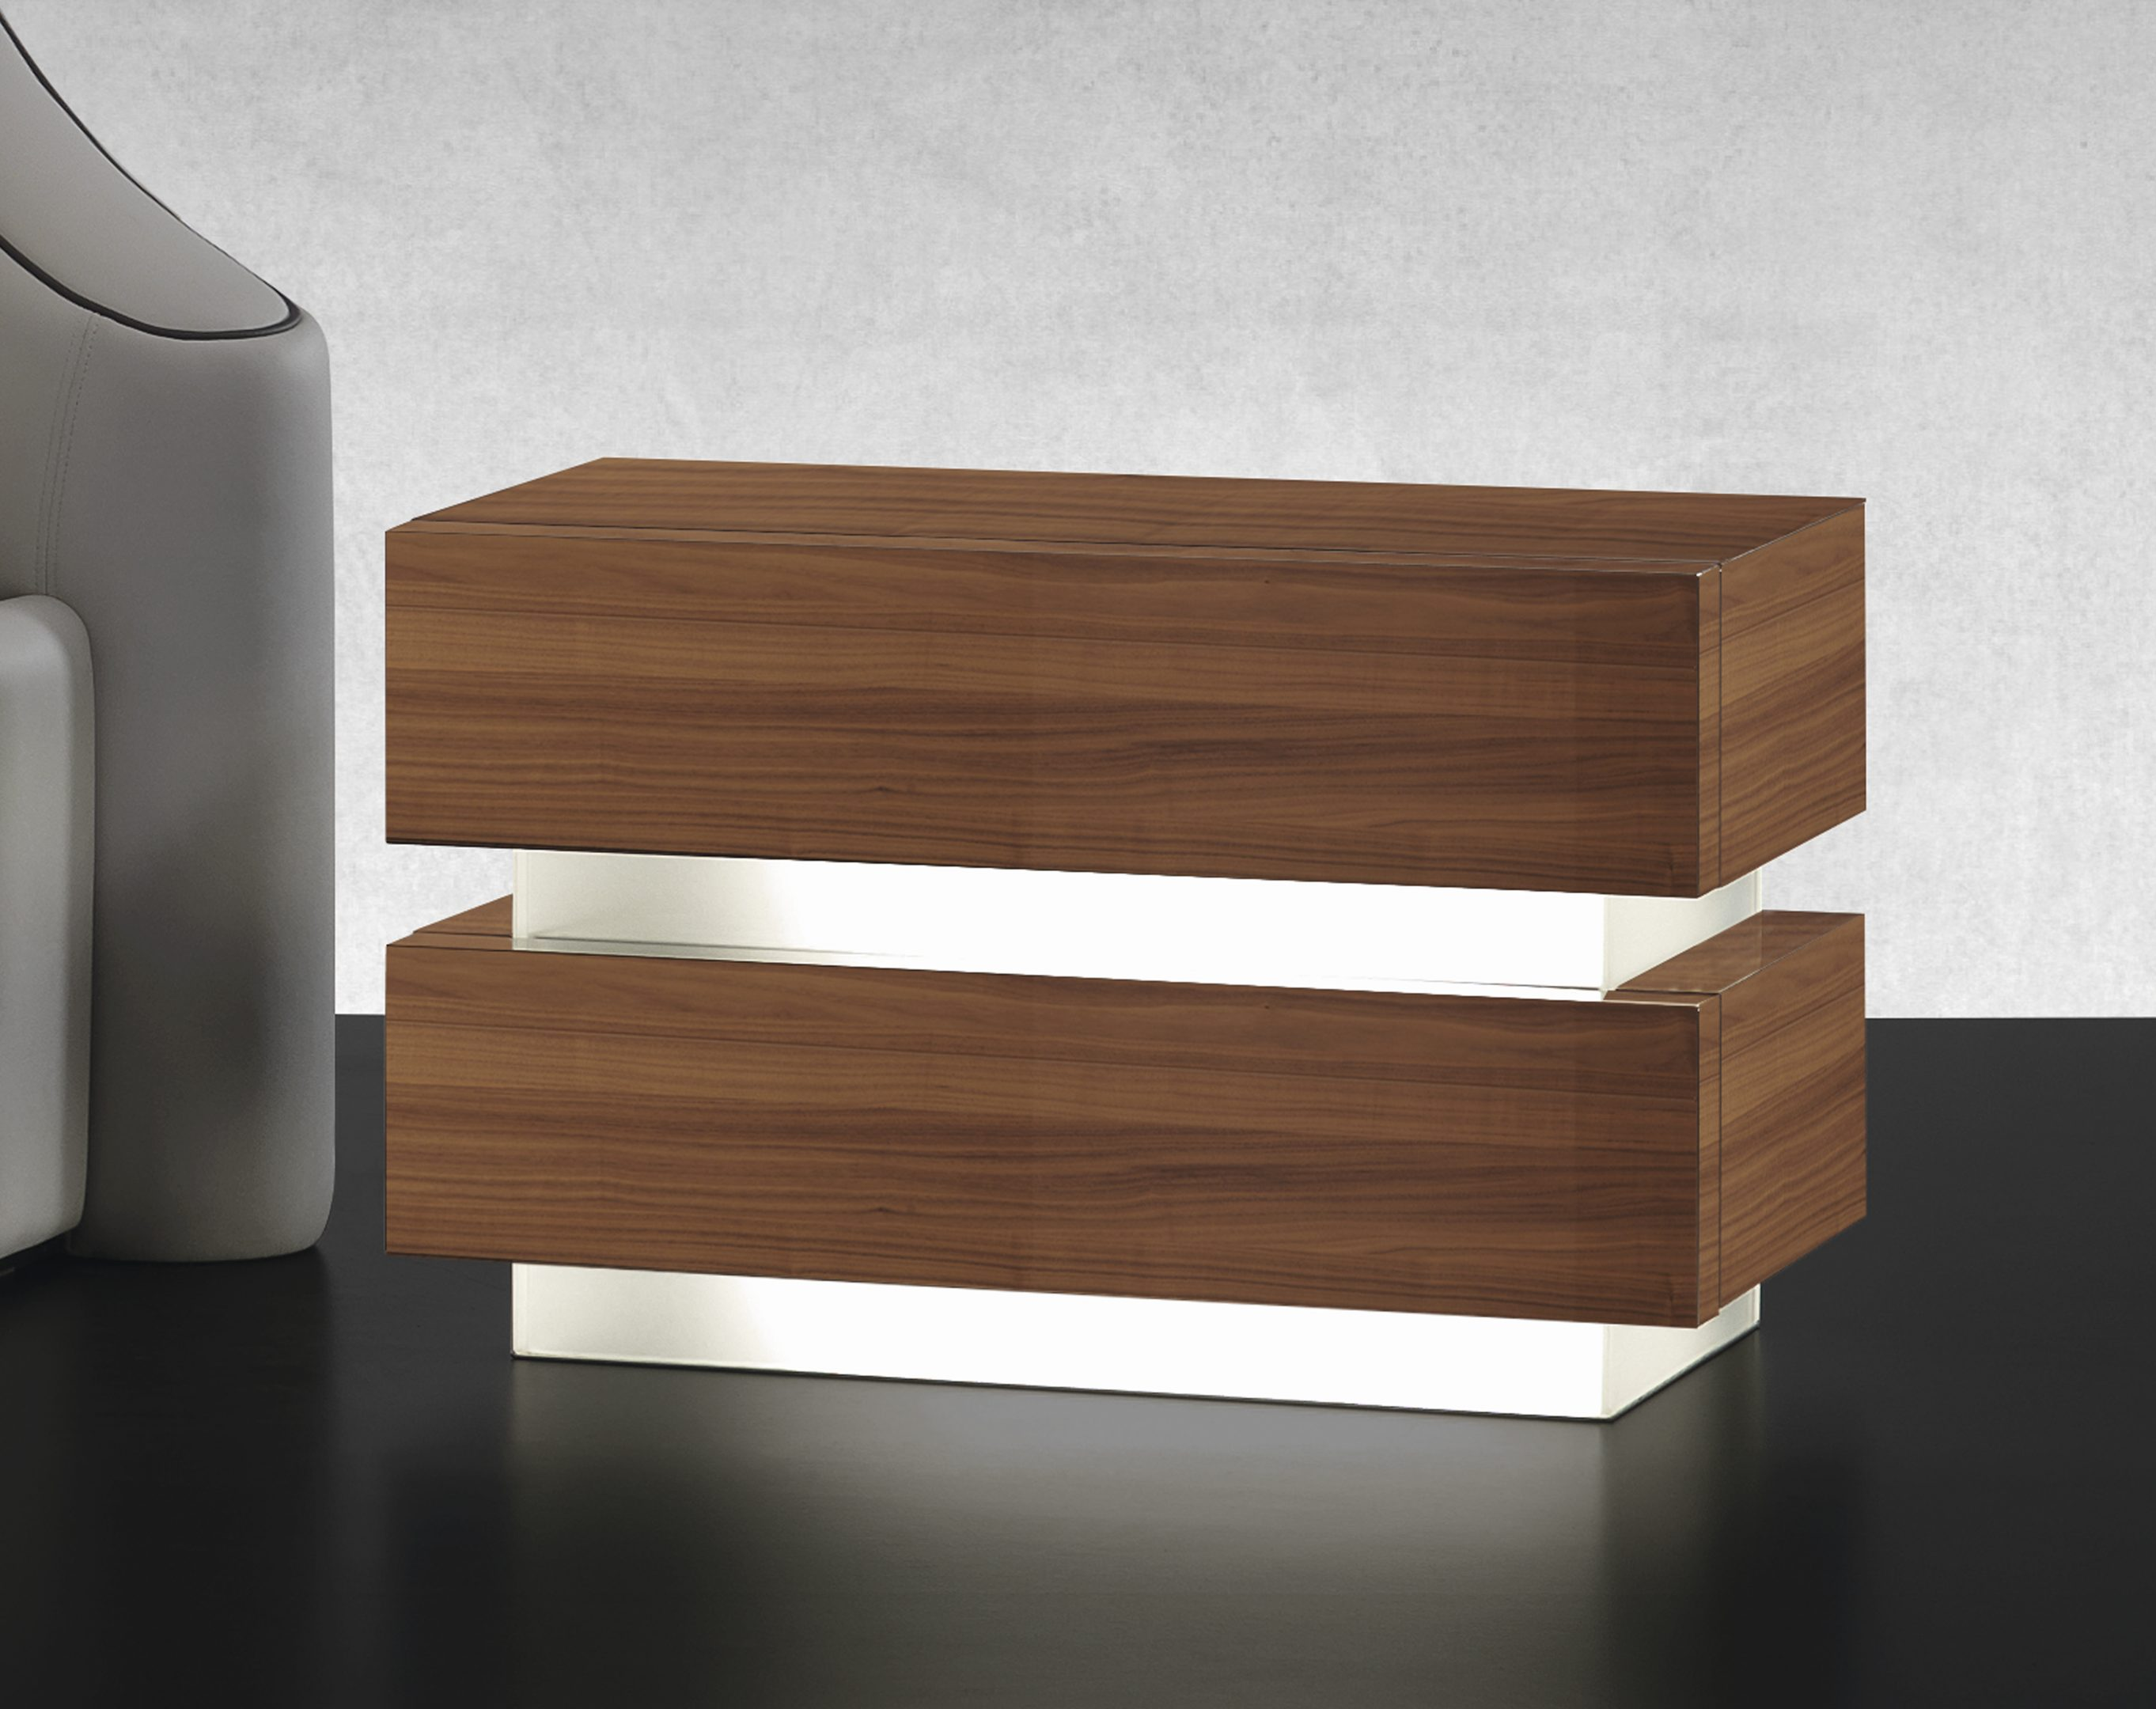 Luce Bedside table